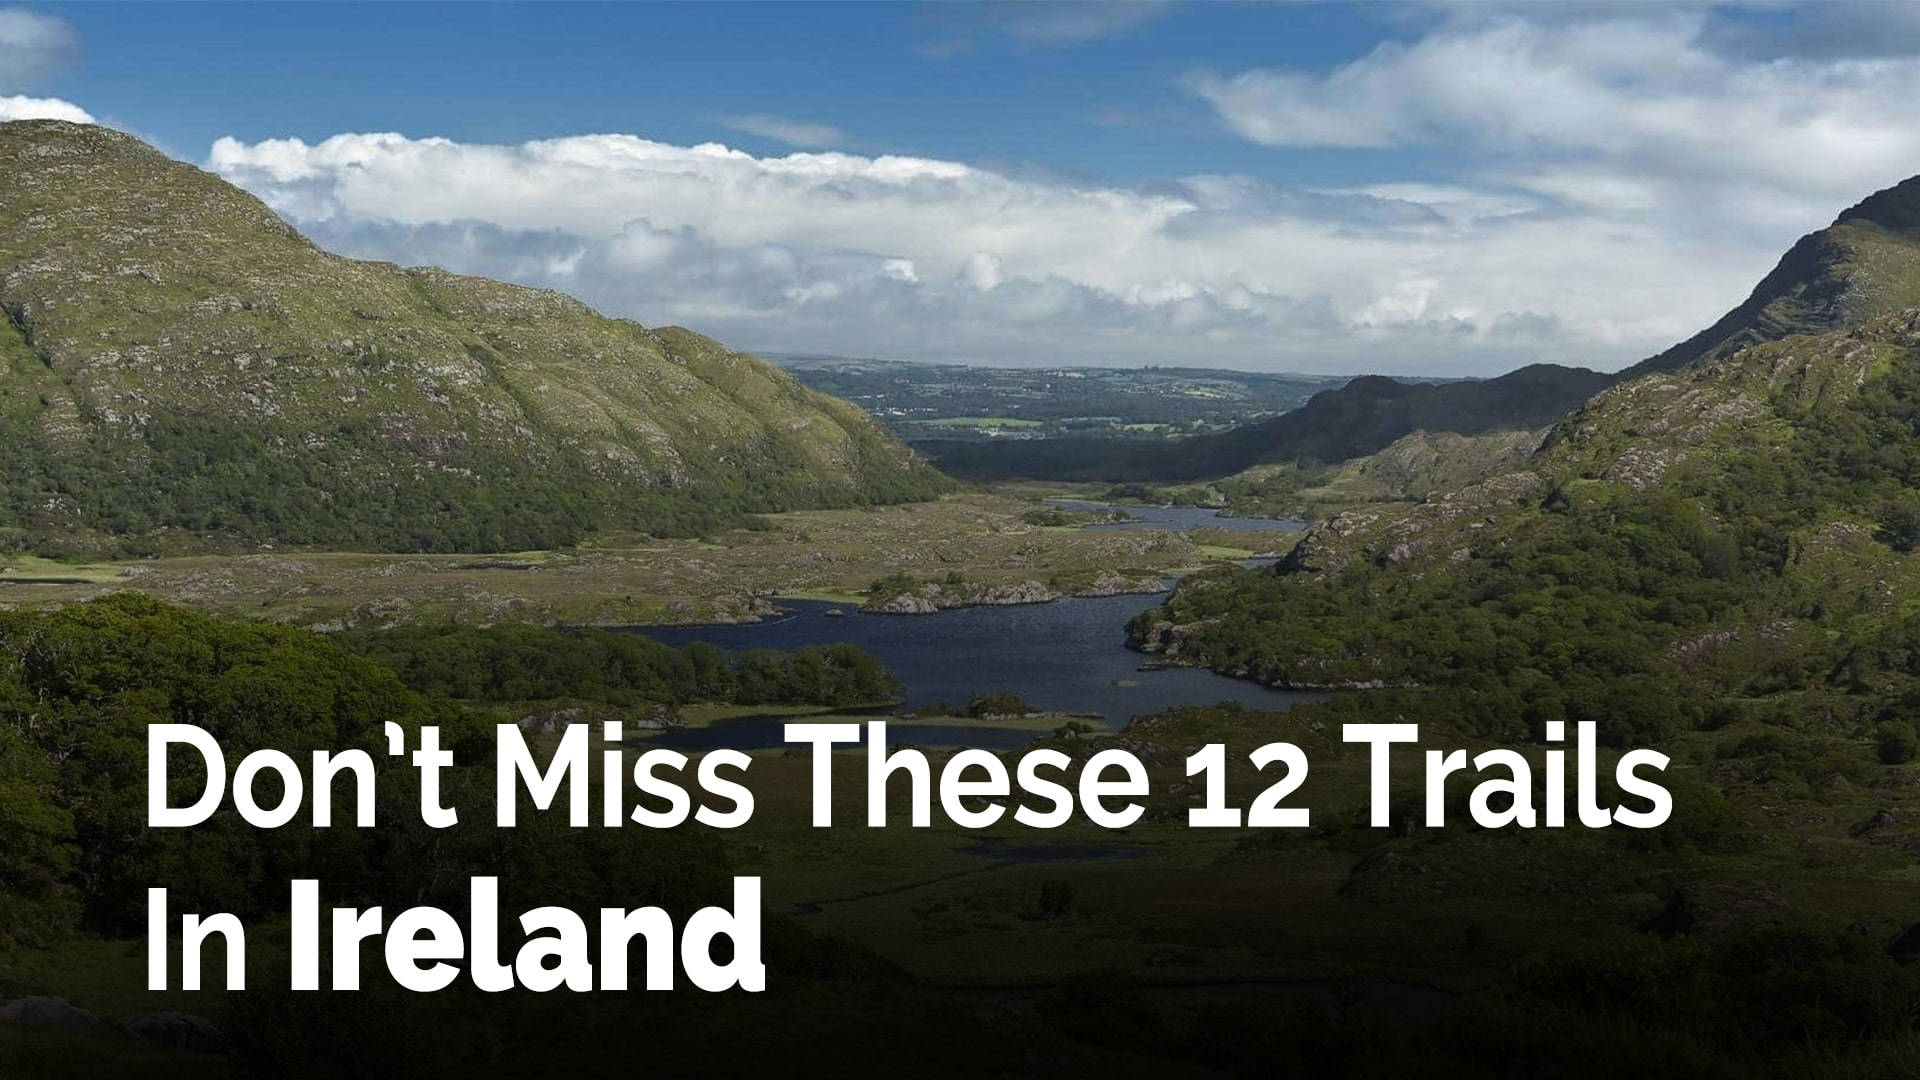 Don't Miss These 12 Trails In Ireland